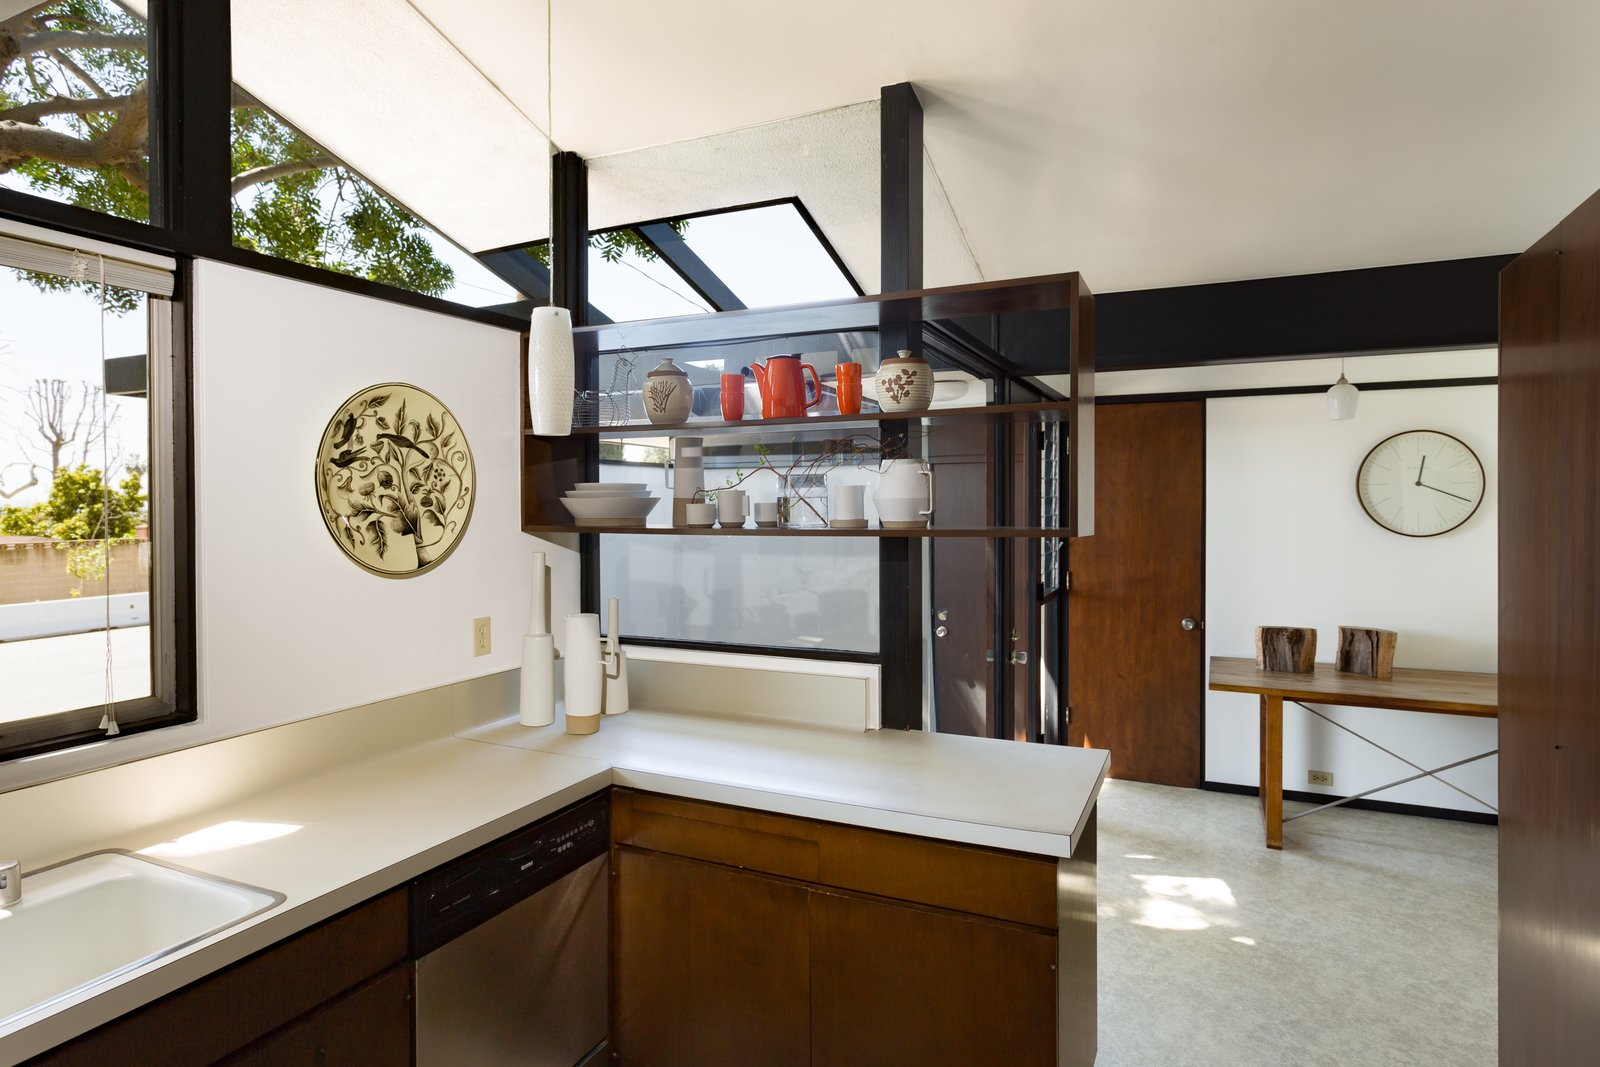 Kitchen  Photo 6 of 14 in Offered at $899K, a Restored Midcentury Abode Shines in Southern California